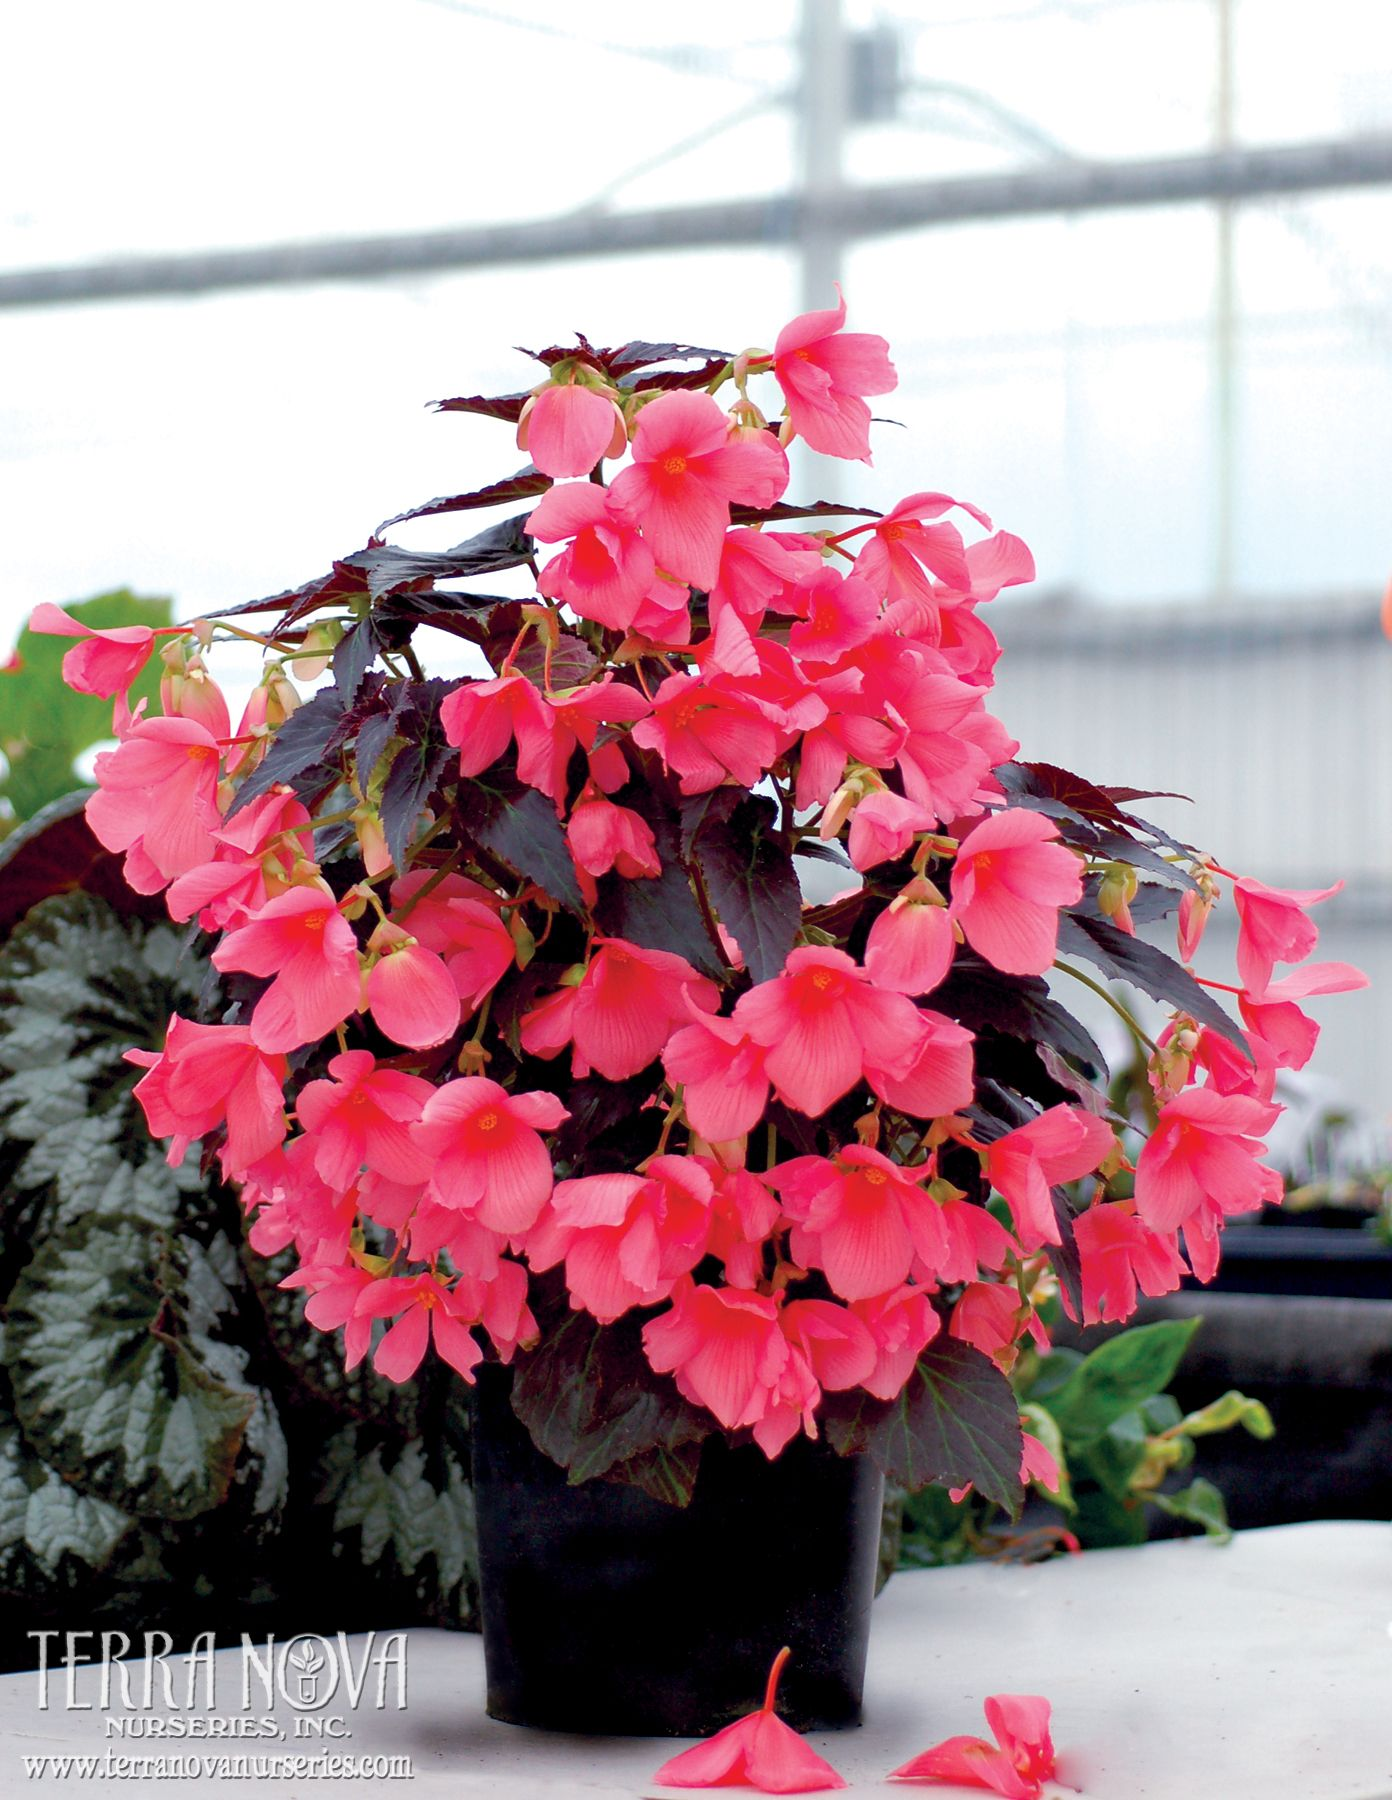 Begonia Cocoa Enchanted Evening Large Single Shrimp Pink Flowers Resemble Hibiscus Blossoms They Appear In Cluster Begonia Blooming Plants House Plants